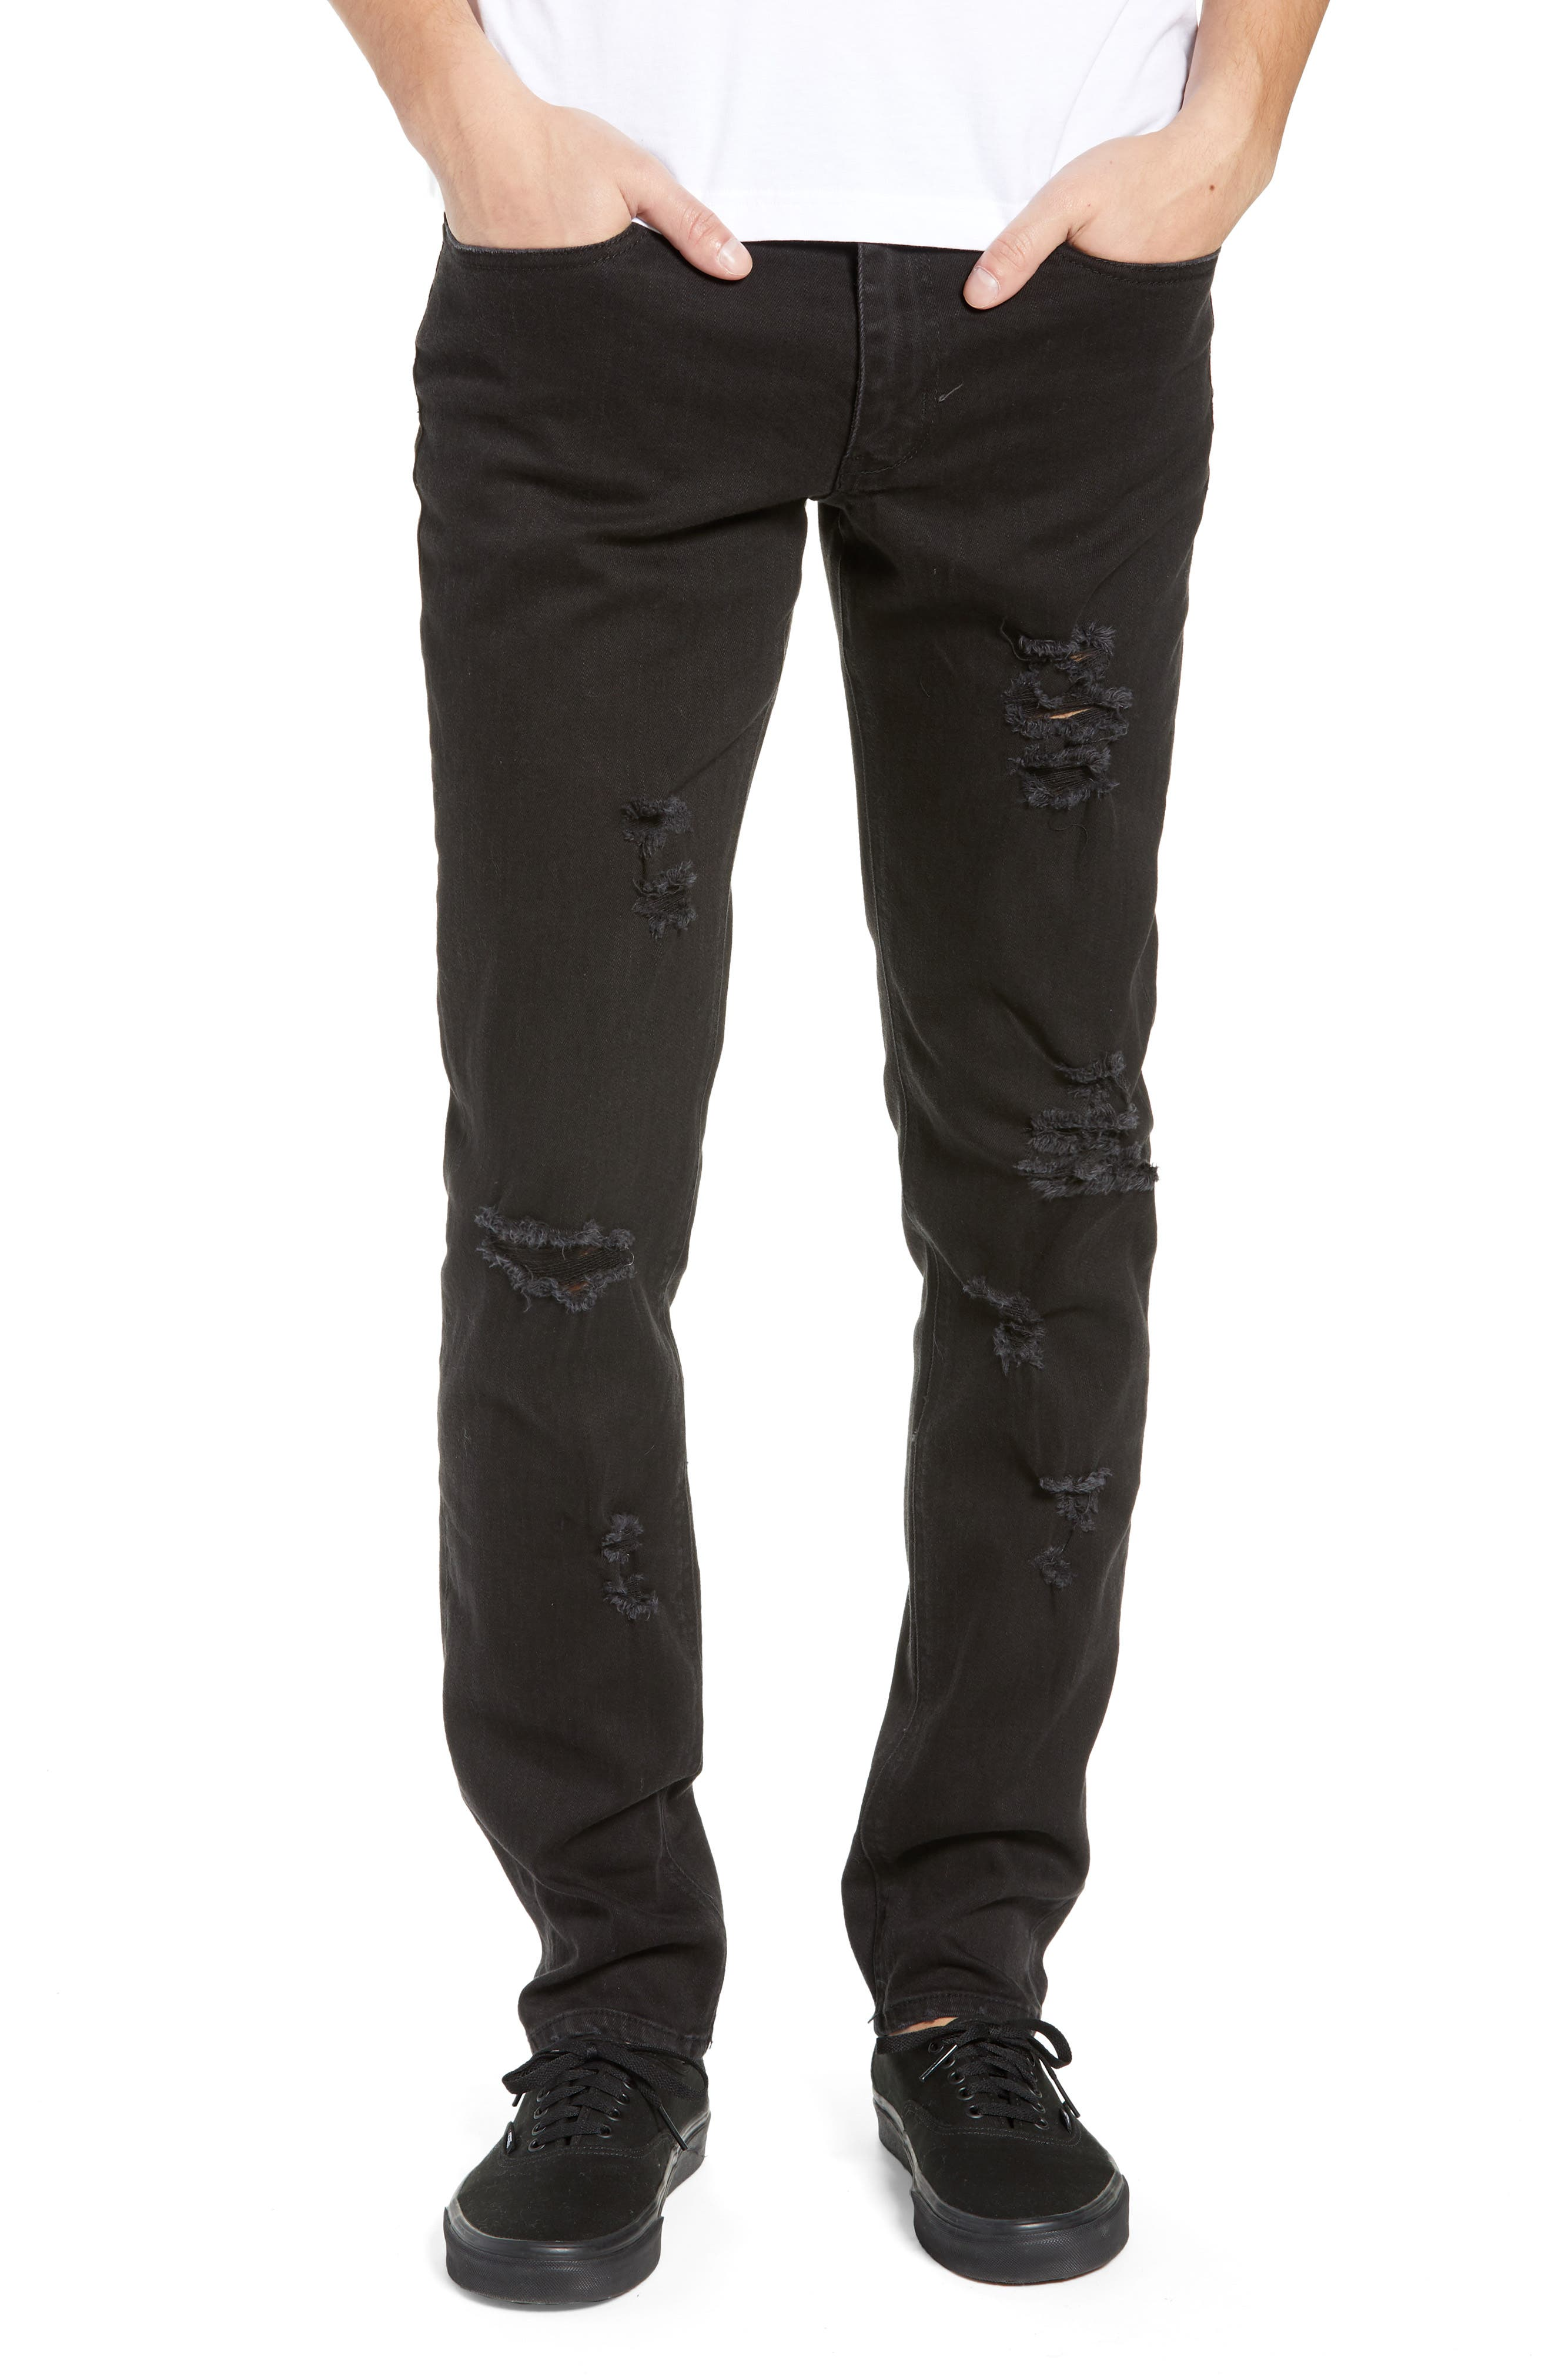 Shredded Slim Fit Jeans,                         Main,                         color, BLACK STONE WASH